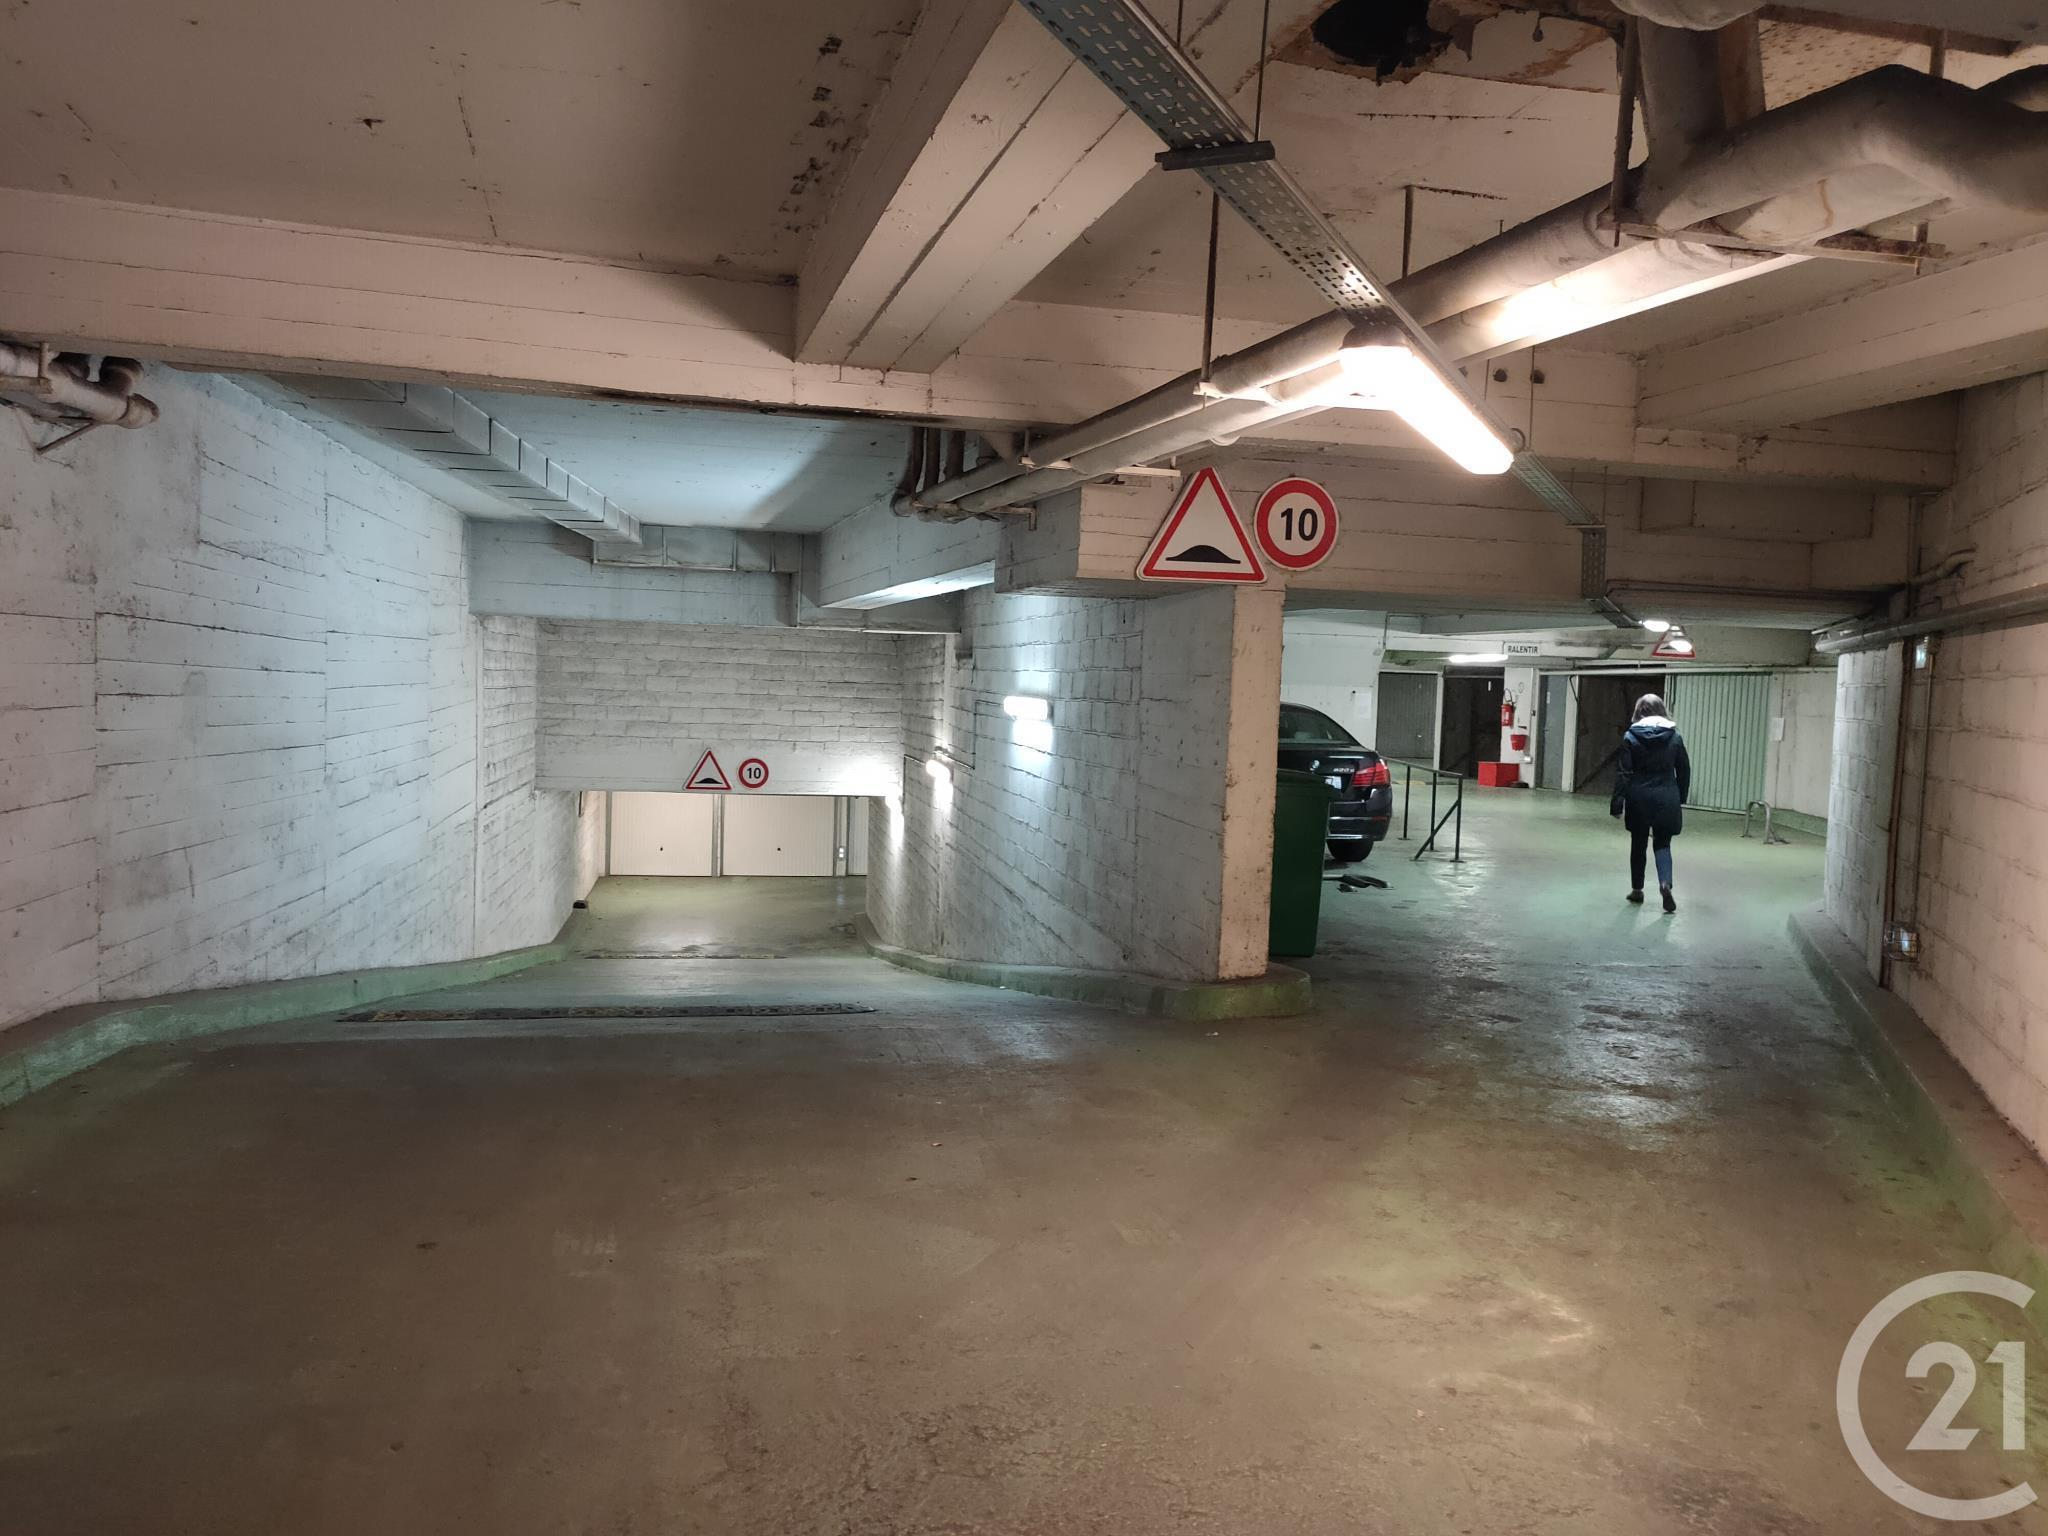 Parking à louer - 10 m2 - PARIS - 75017 - ILE-DE-FRANCE